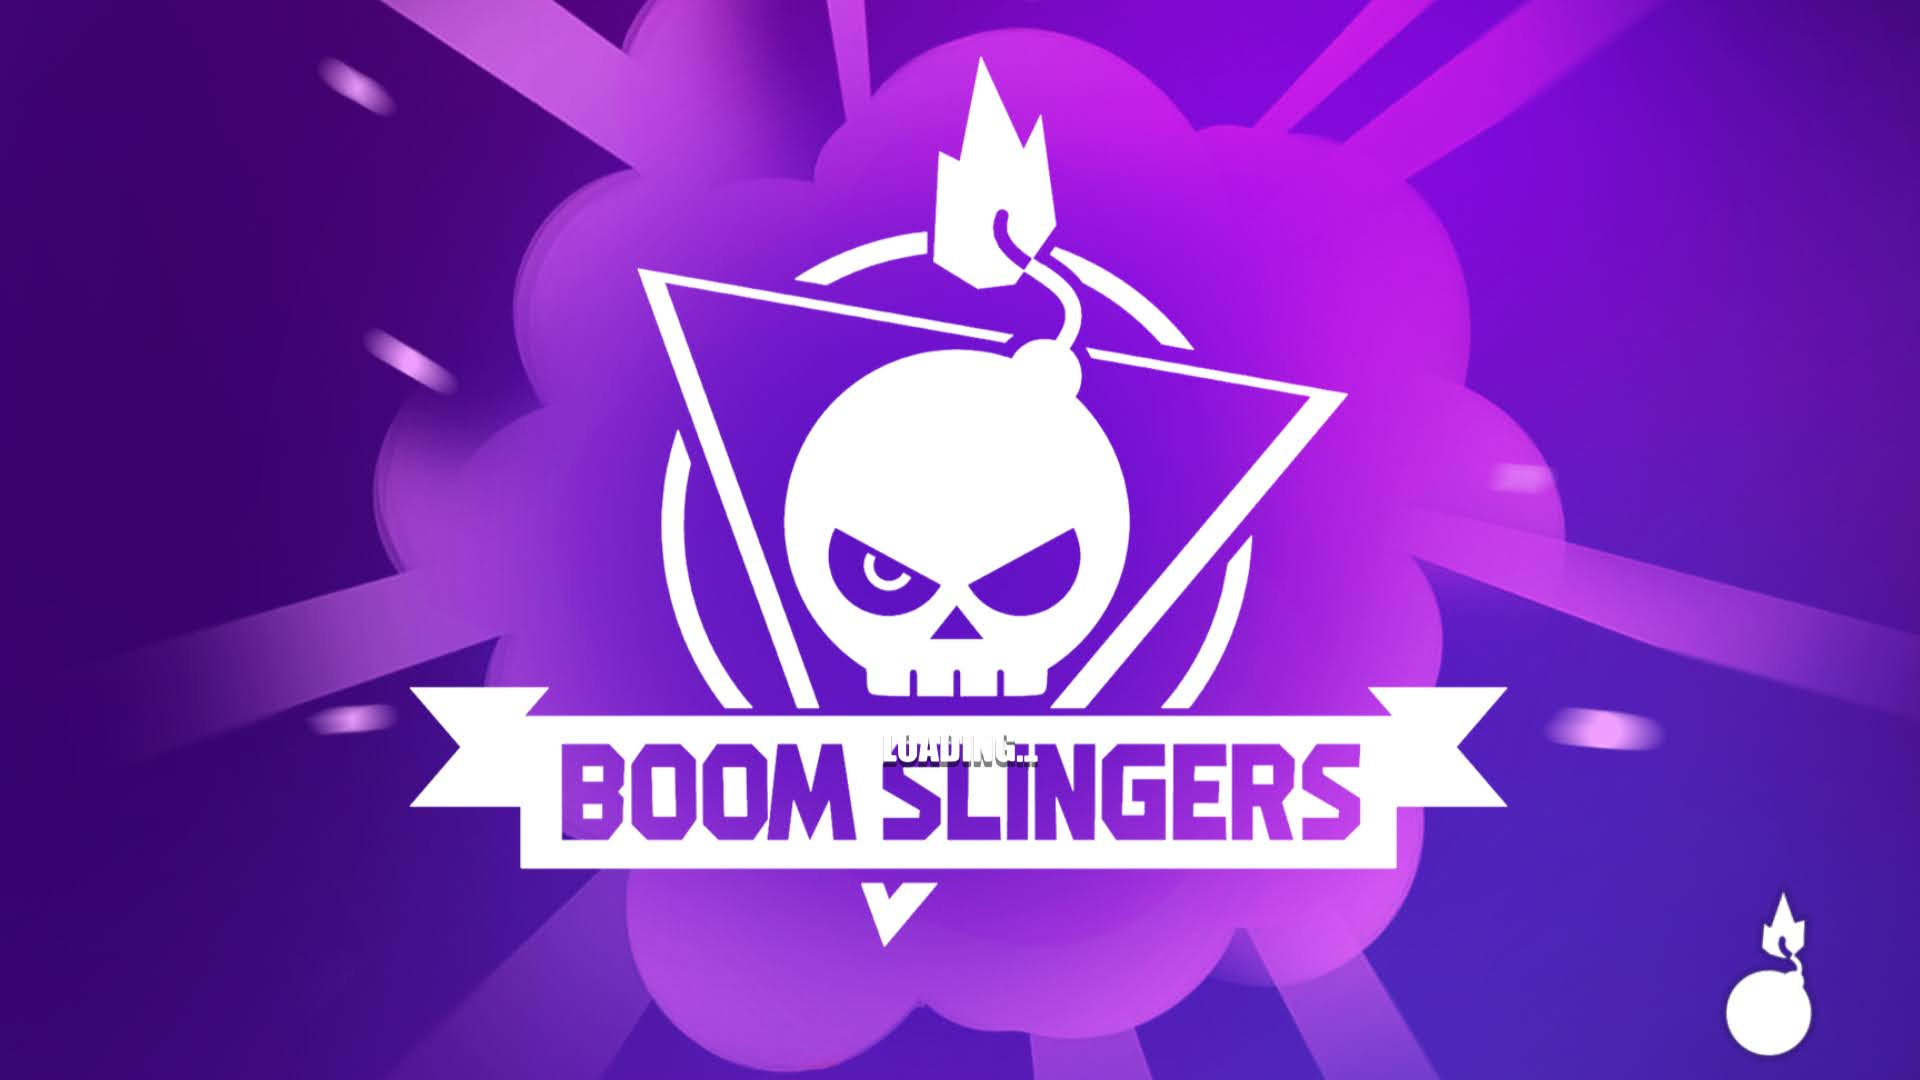 Boom Slingers – Battle Cards is a ridiculously fun time sink full of nostalgia